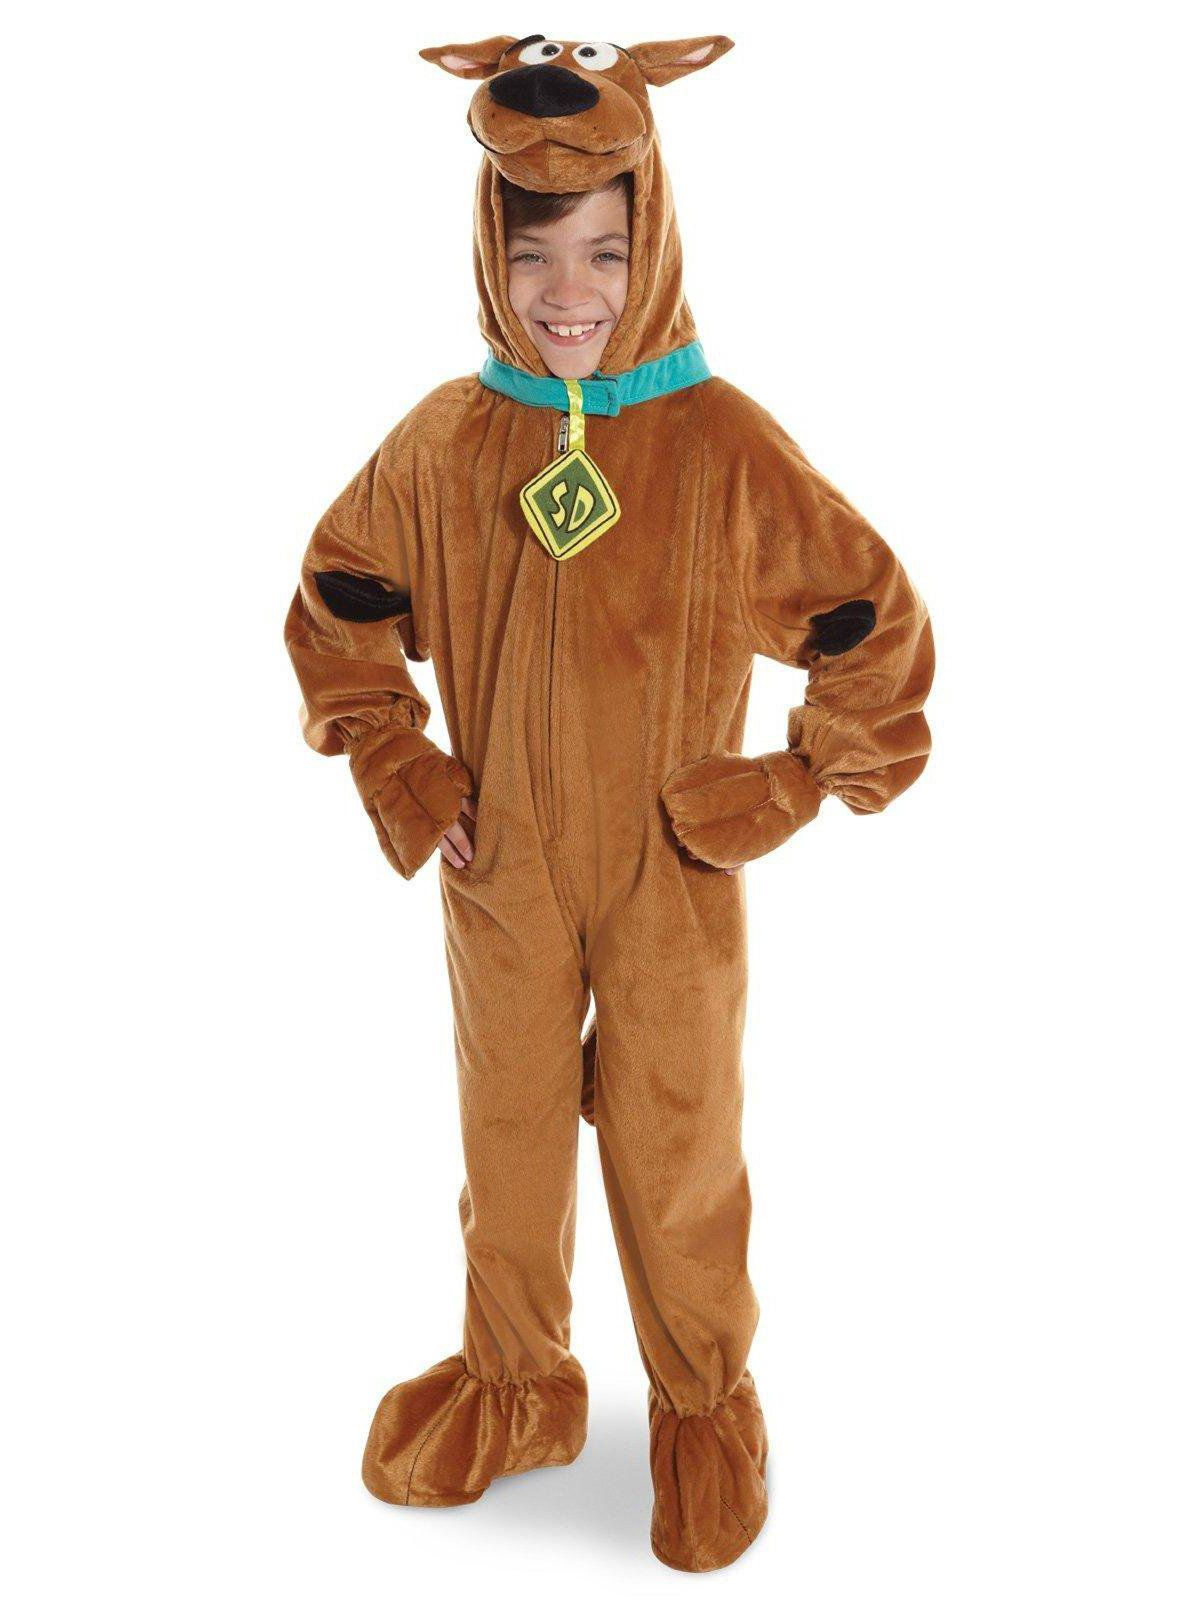 scooby-doo super deluxe costume for toddlers - baby/toddler costumes